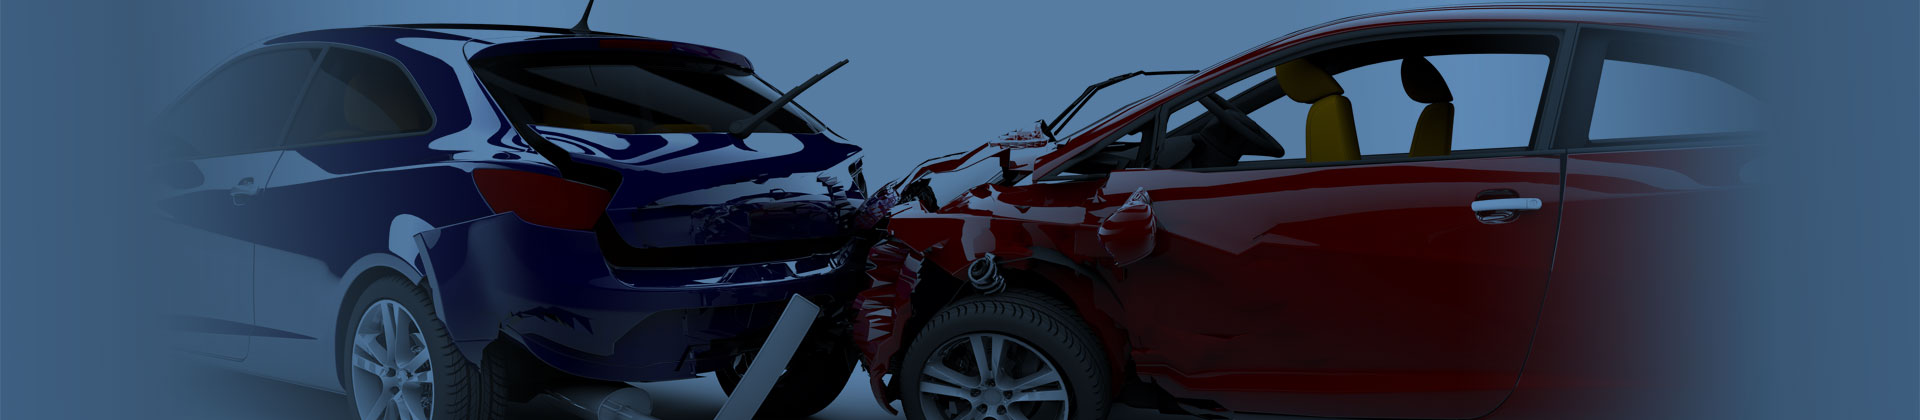 Richland Car Accident Lawyer